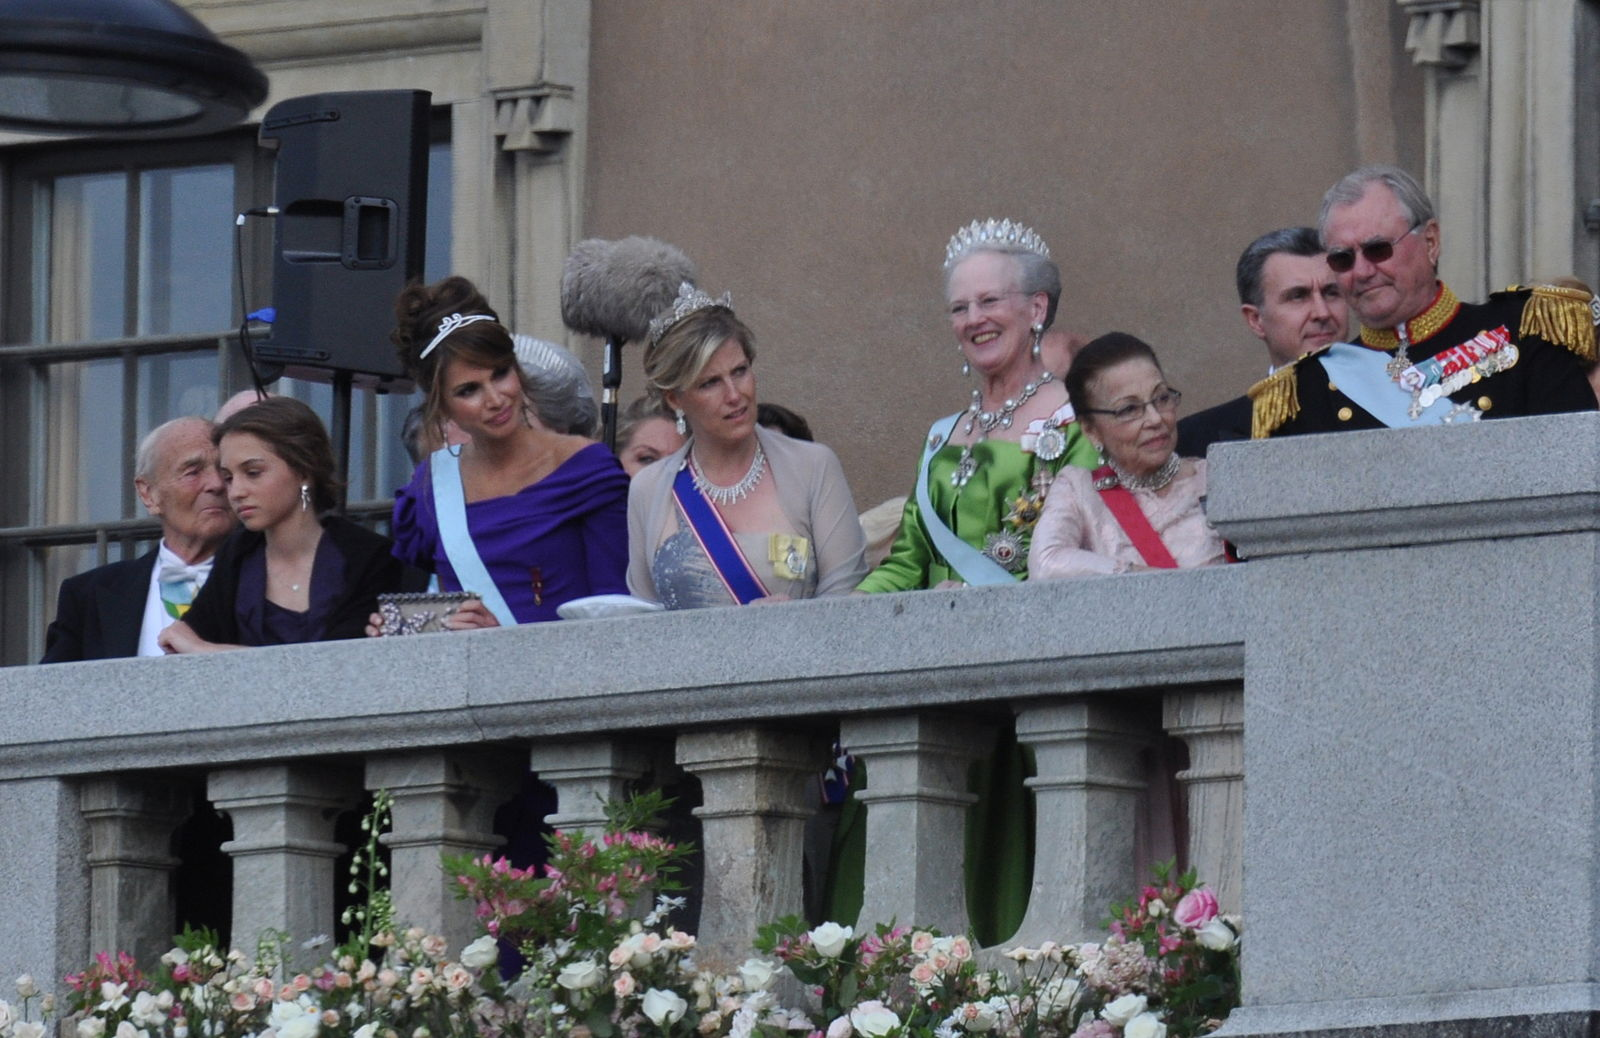 Queen Rania on the terrace of the Royal Palace of Stockholm. Her daughter, Princess Iman is to her right. Photo: Prolineserver via Wikimedia Commons